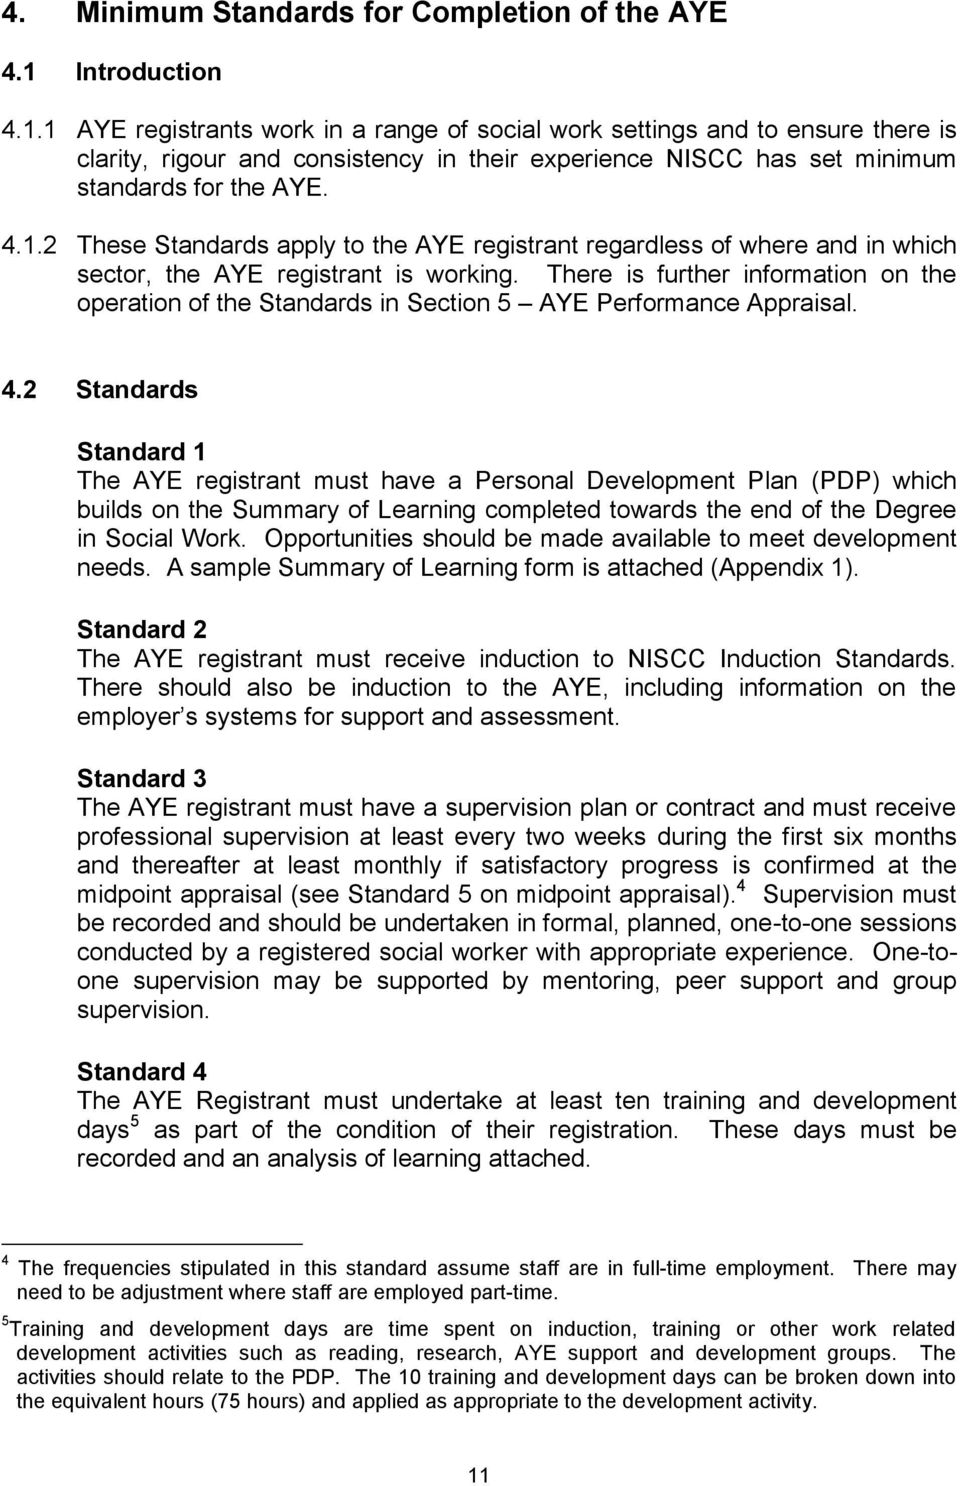 There is further information on the operation of the Standards in Section 5 AYE Performance Appraisal. 4.